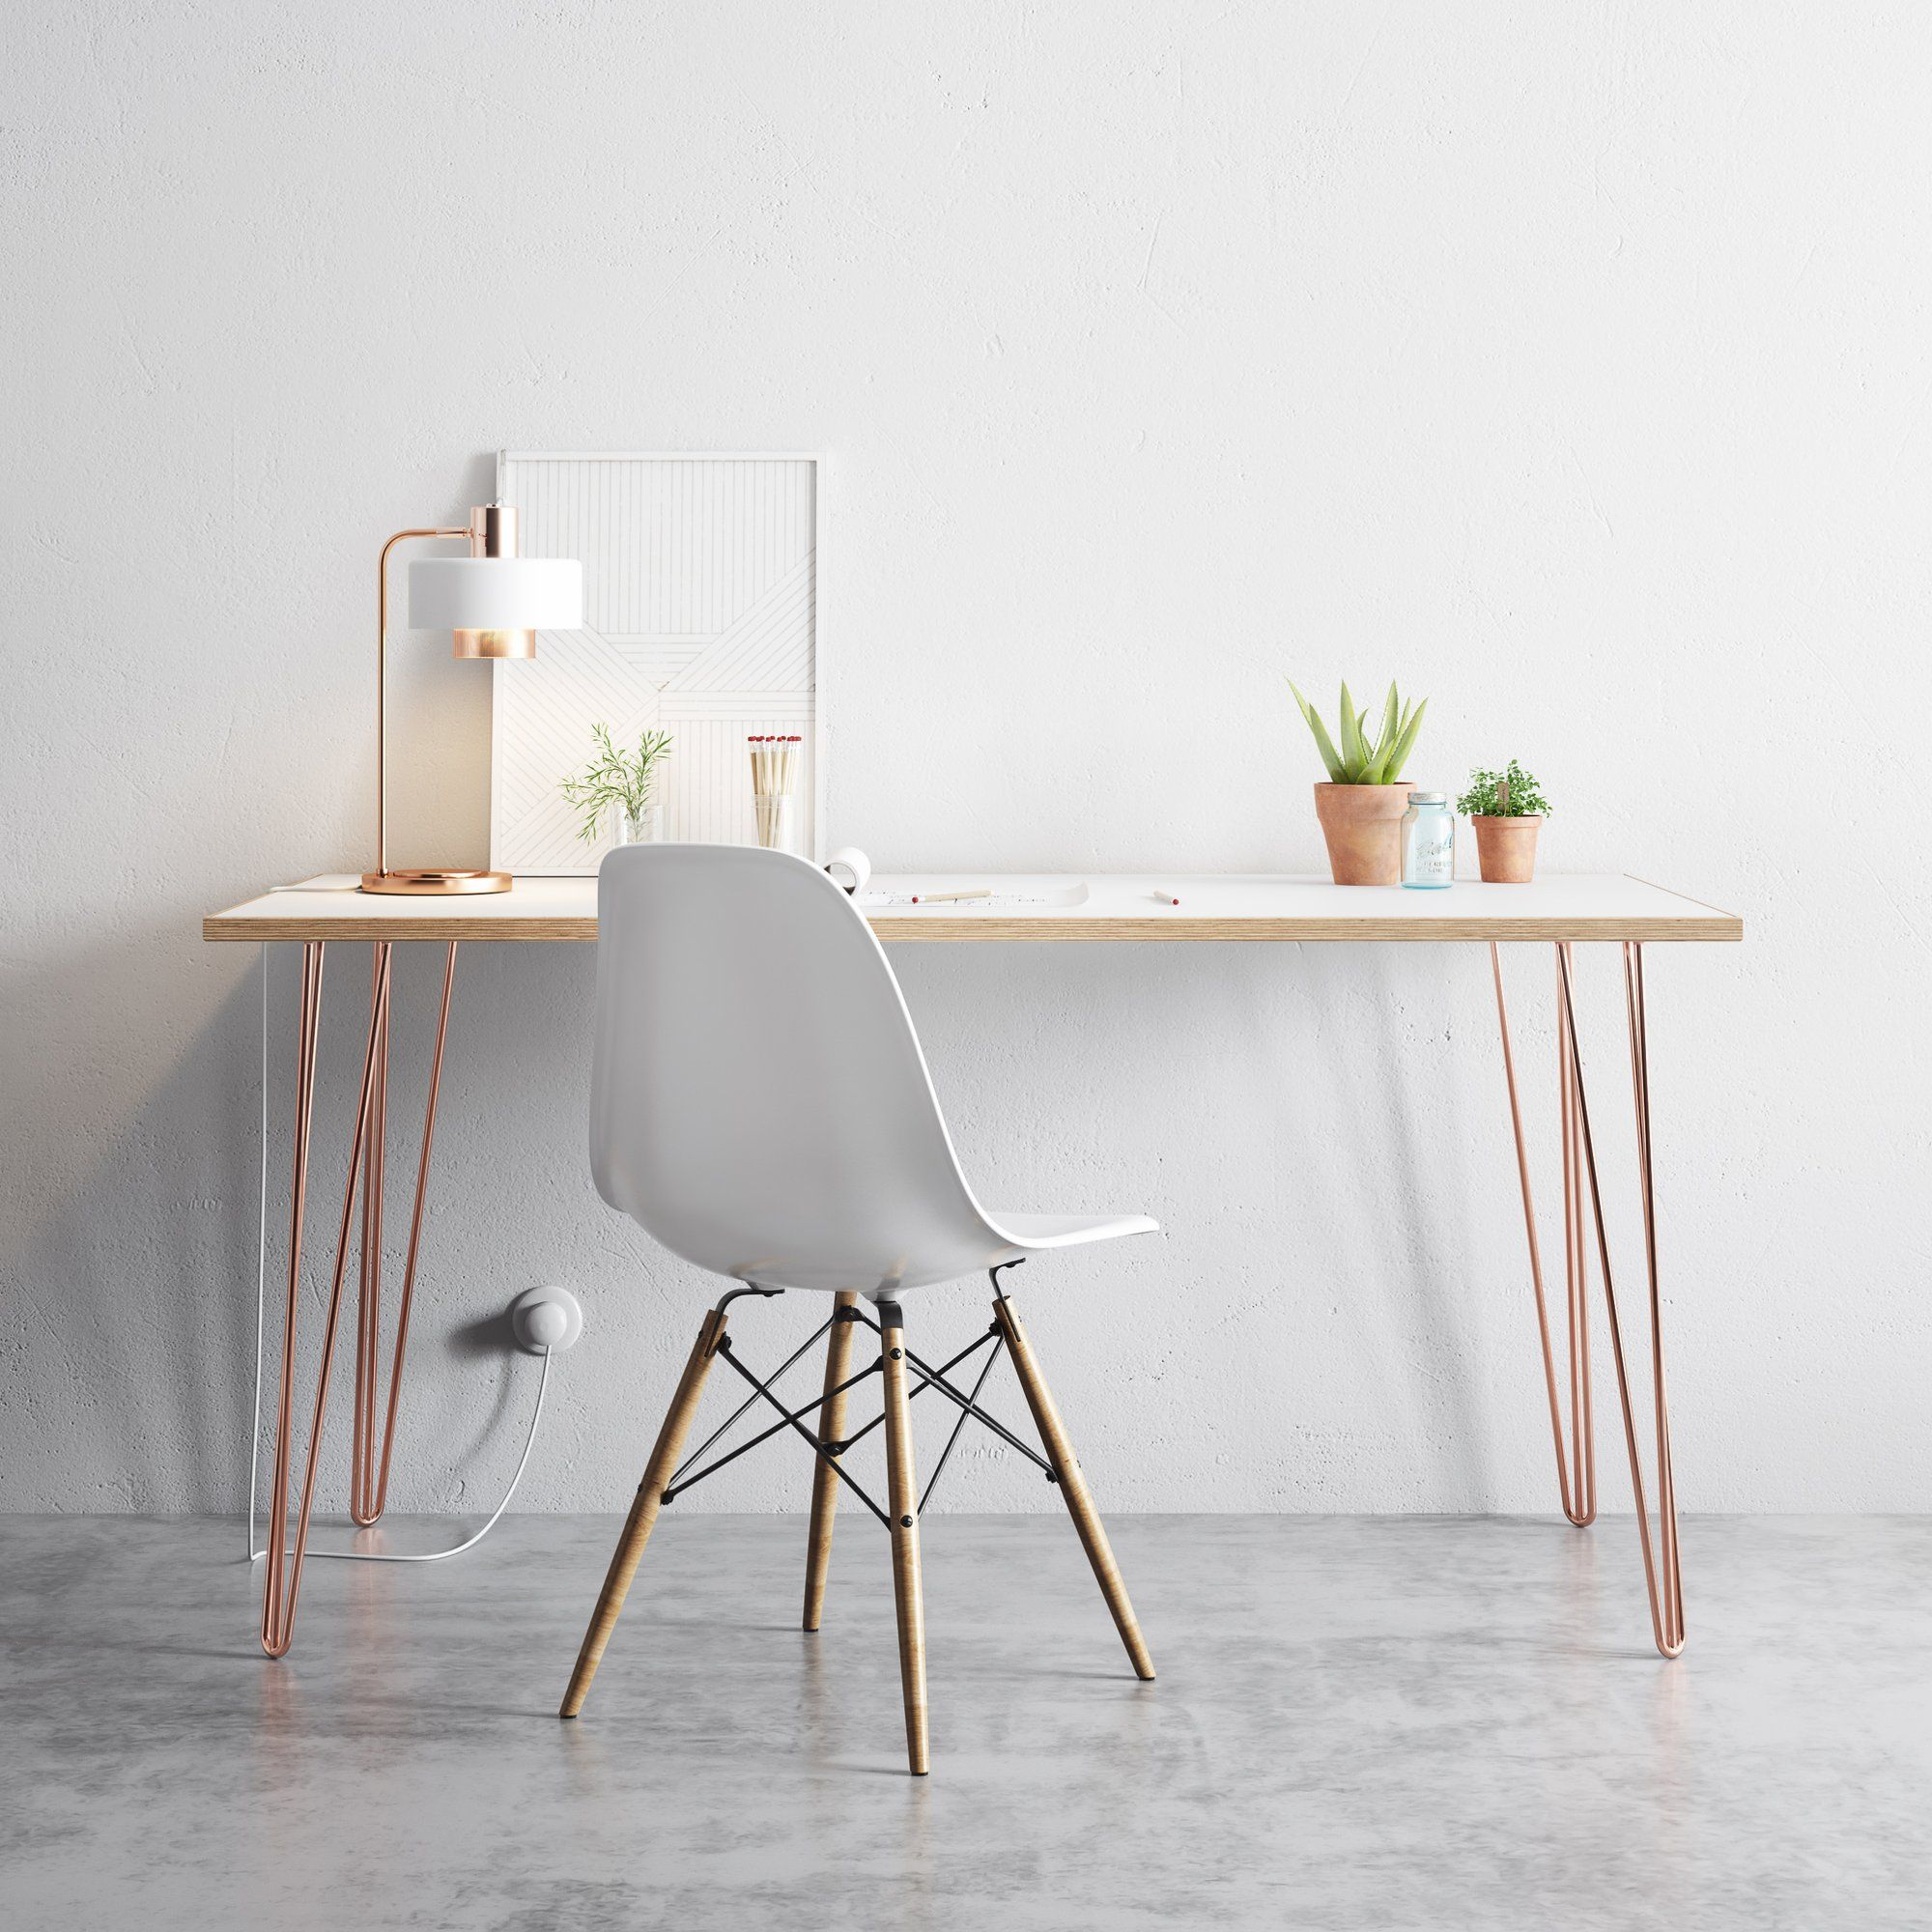 Copper Hairpin Legs With Images Hair Pins Hairpin Leg Desk